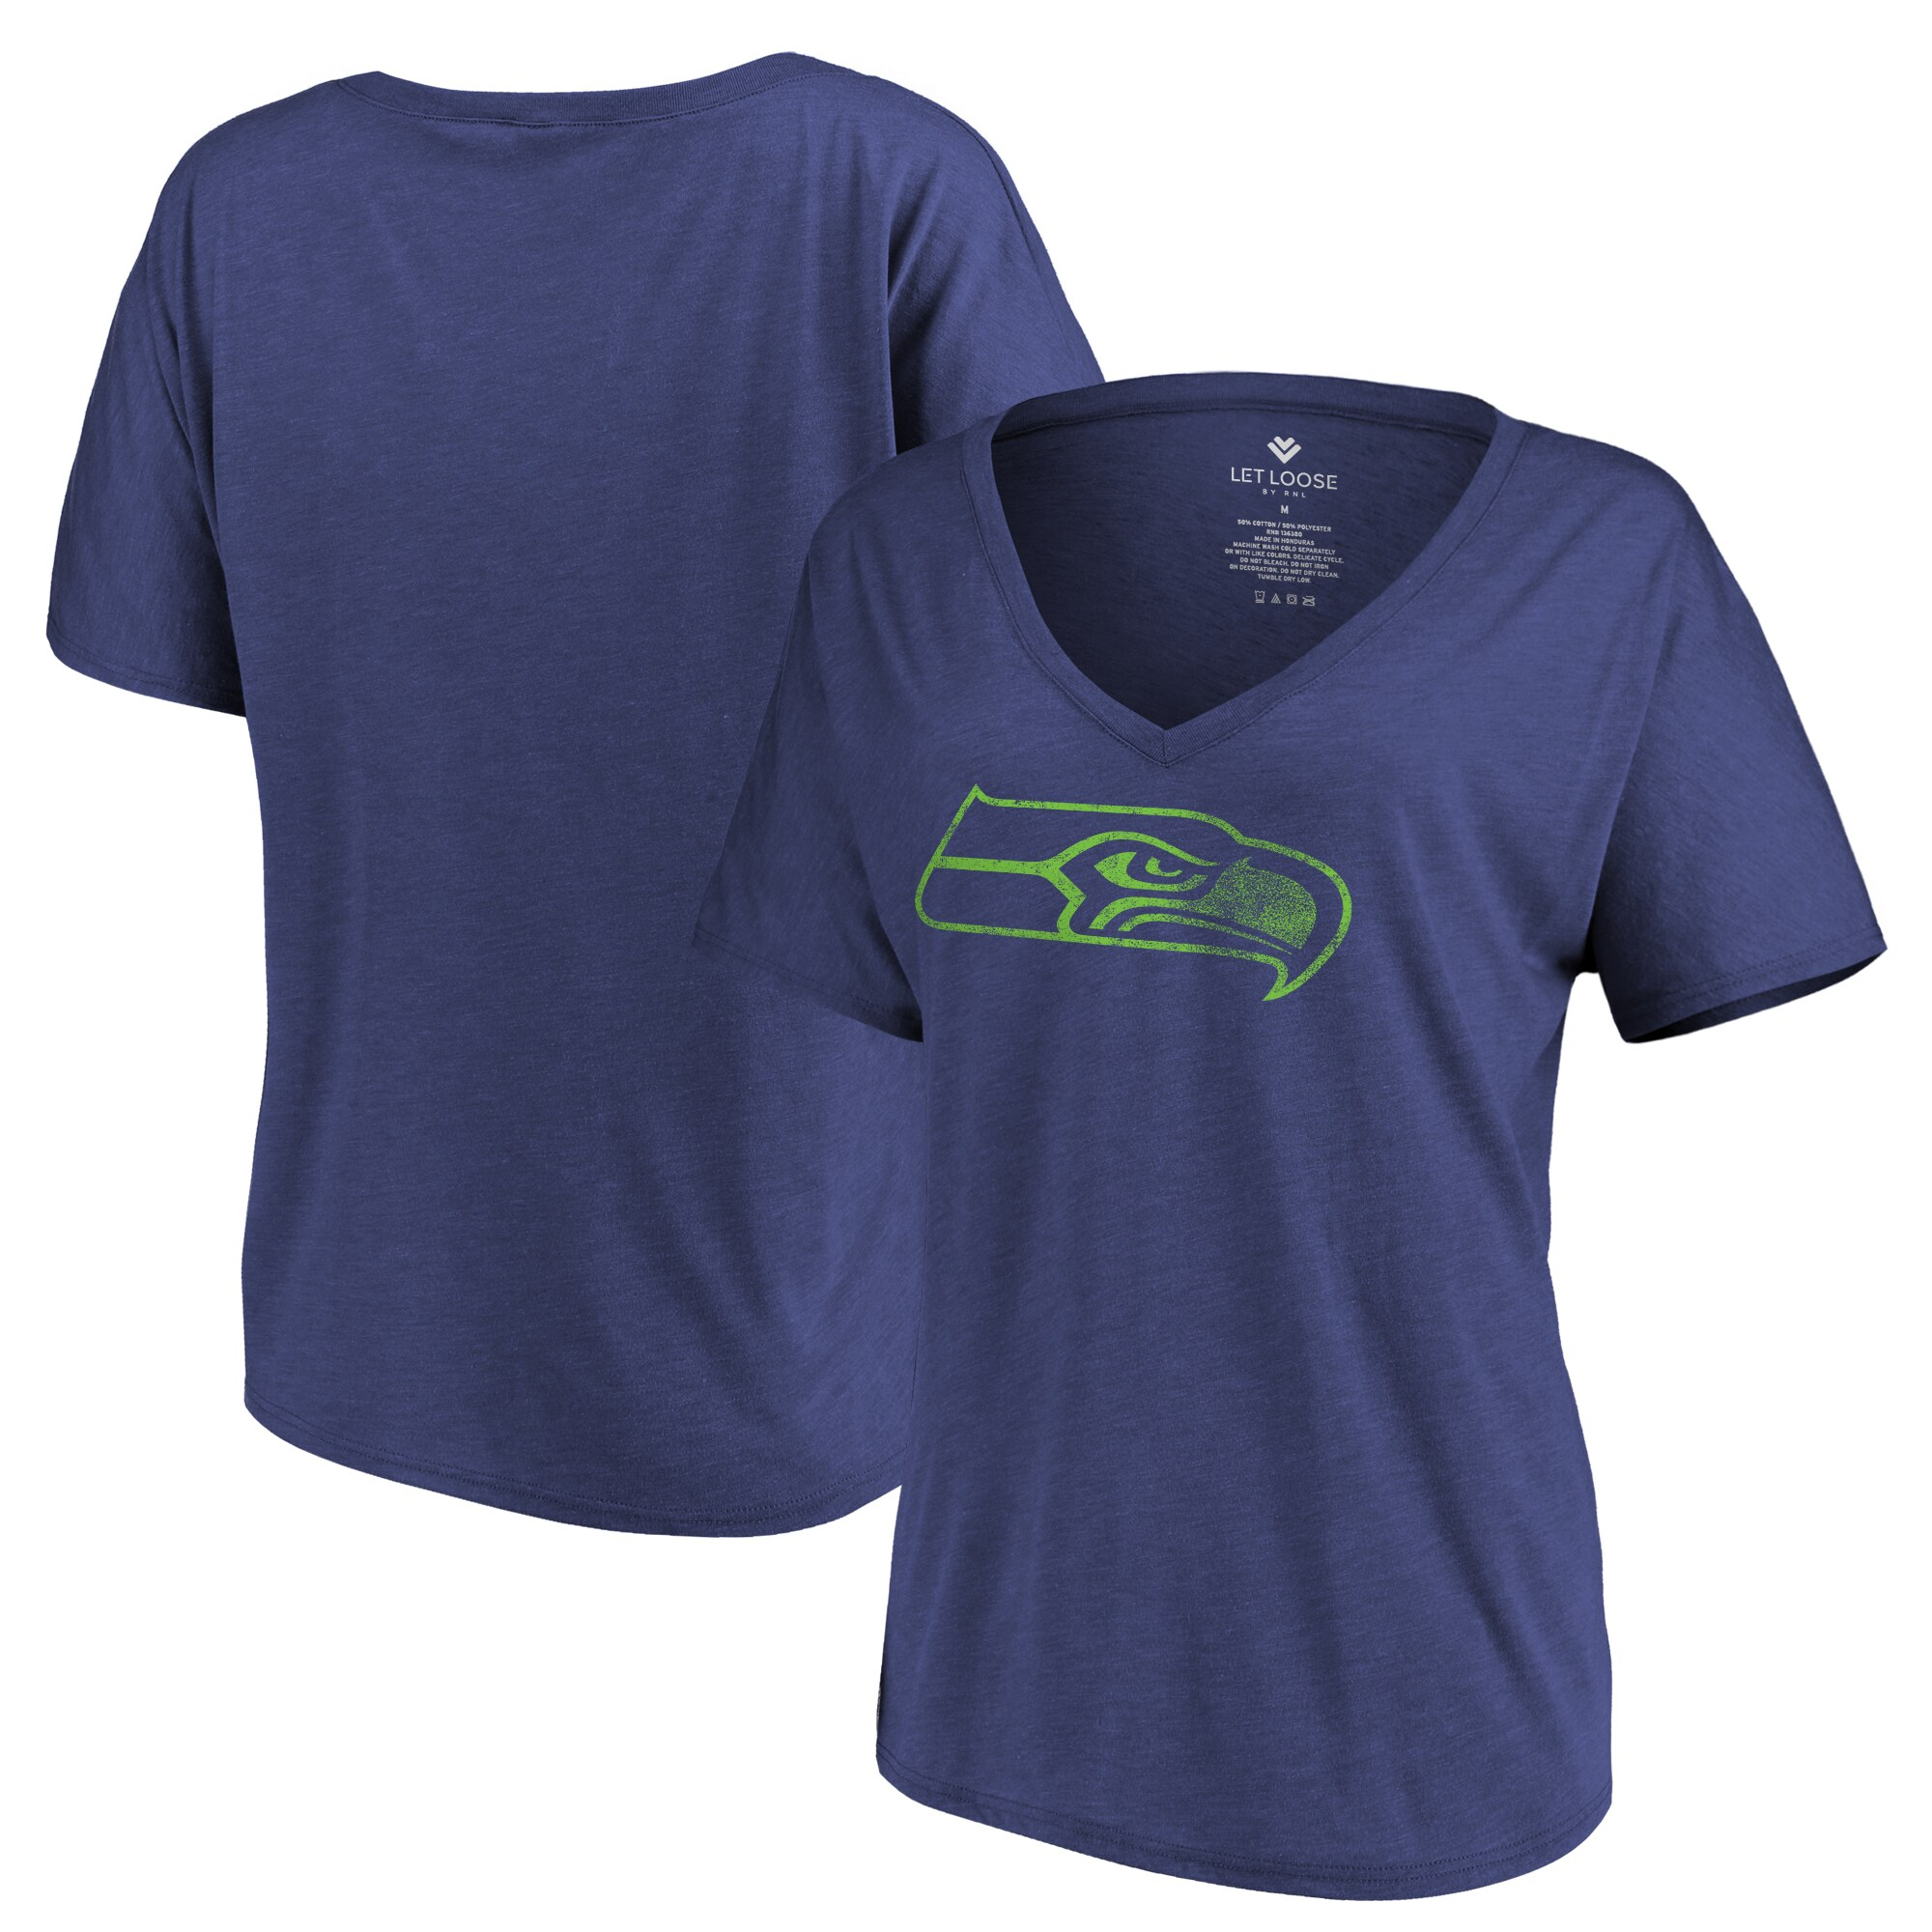 Seattle Seahawks Let Loose by RNL Women's Distressed Primary V-Neck T-Shirt - College Navy